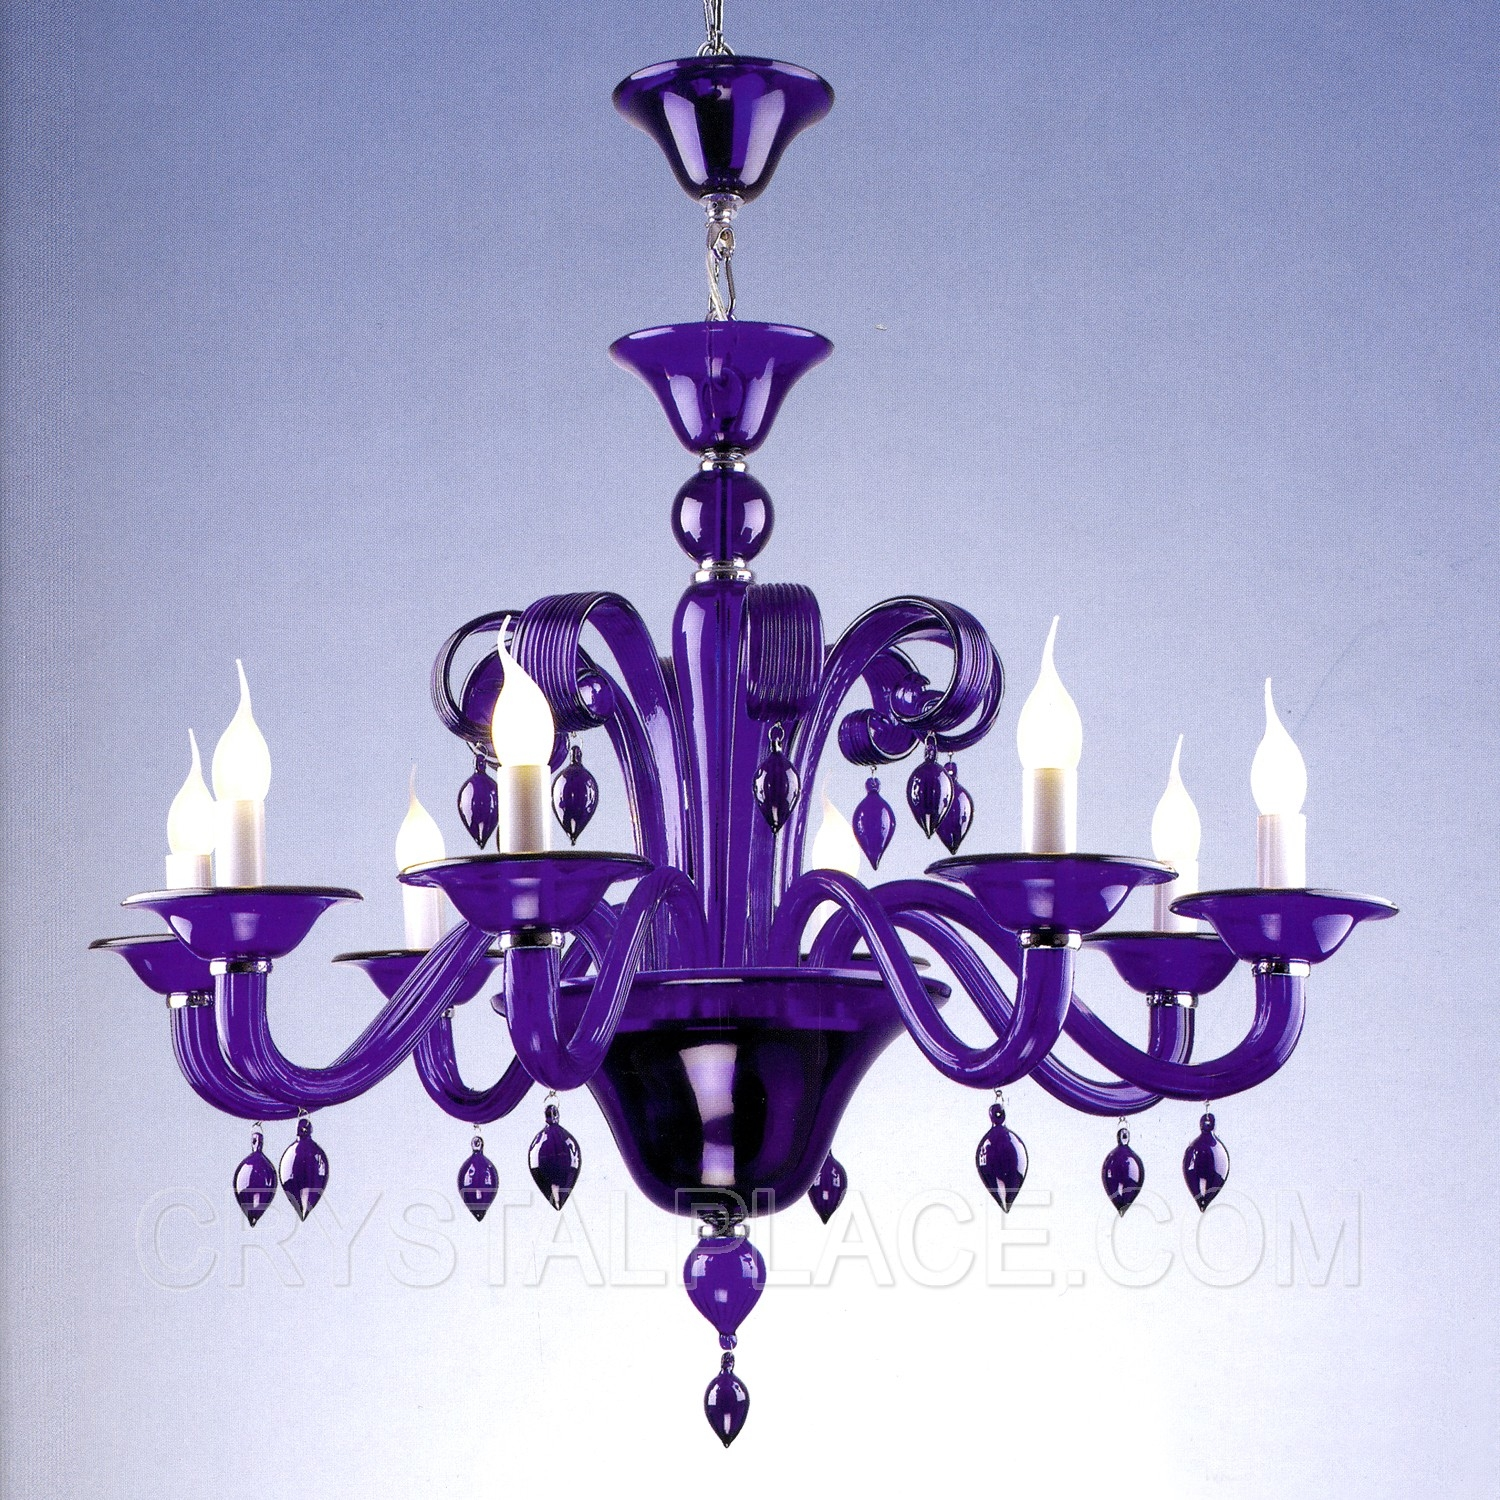 8 Lights Purple Crystal Chandelier W35 X H25 Hand Blown Glass Intended For Purple Crystal Chandelier Lights (Image 3 of 25)